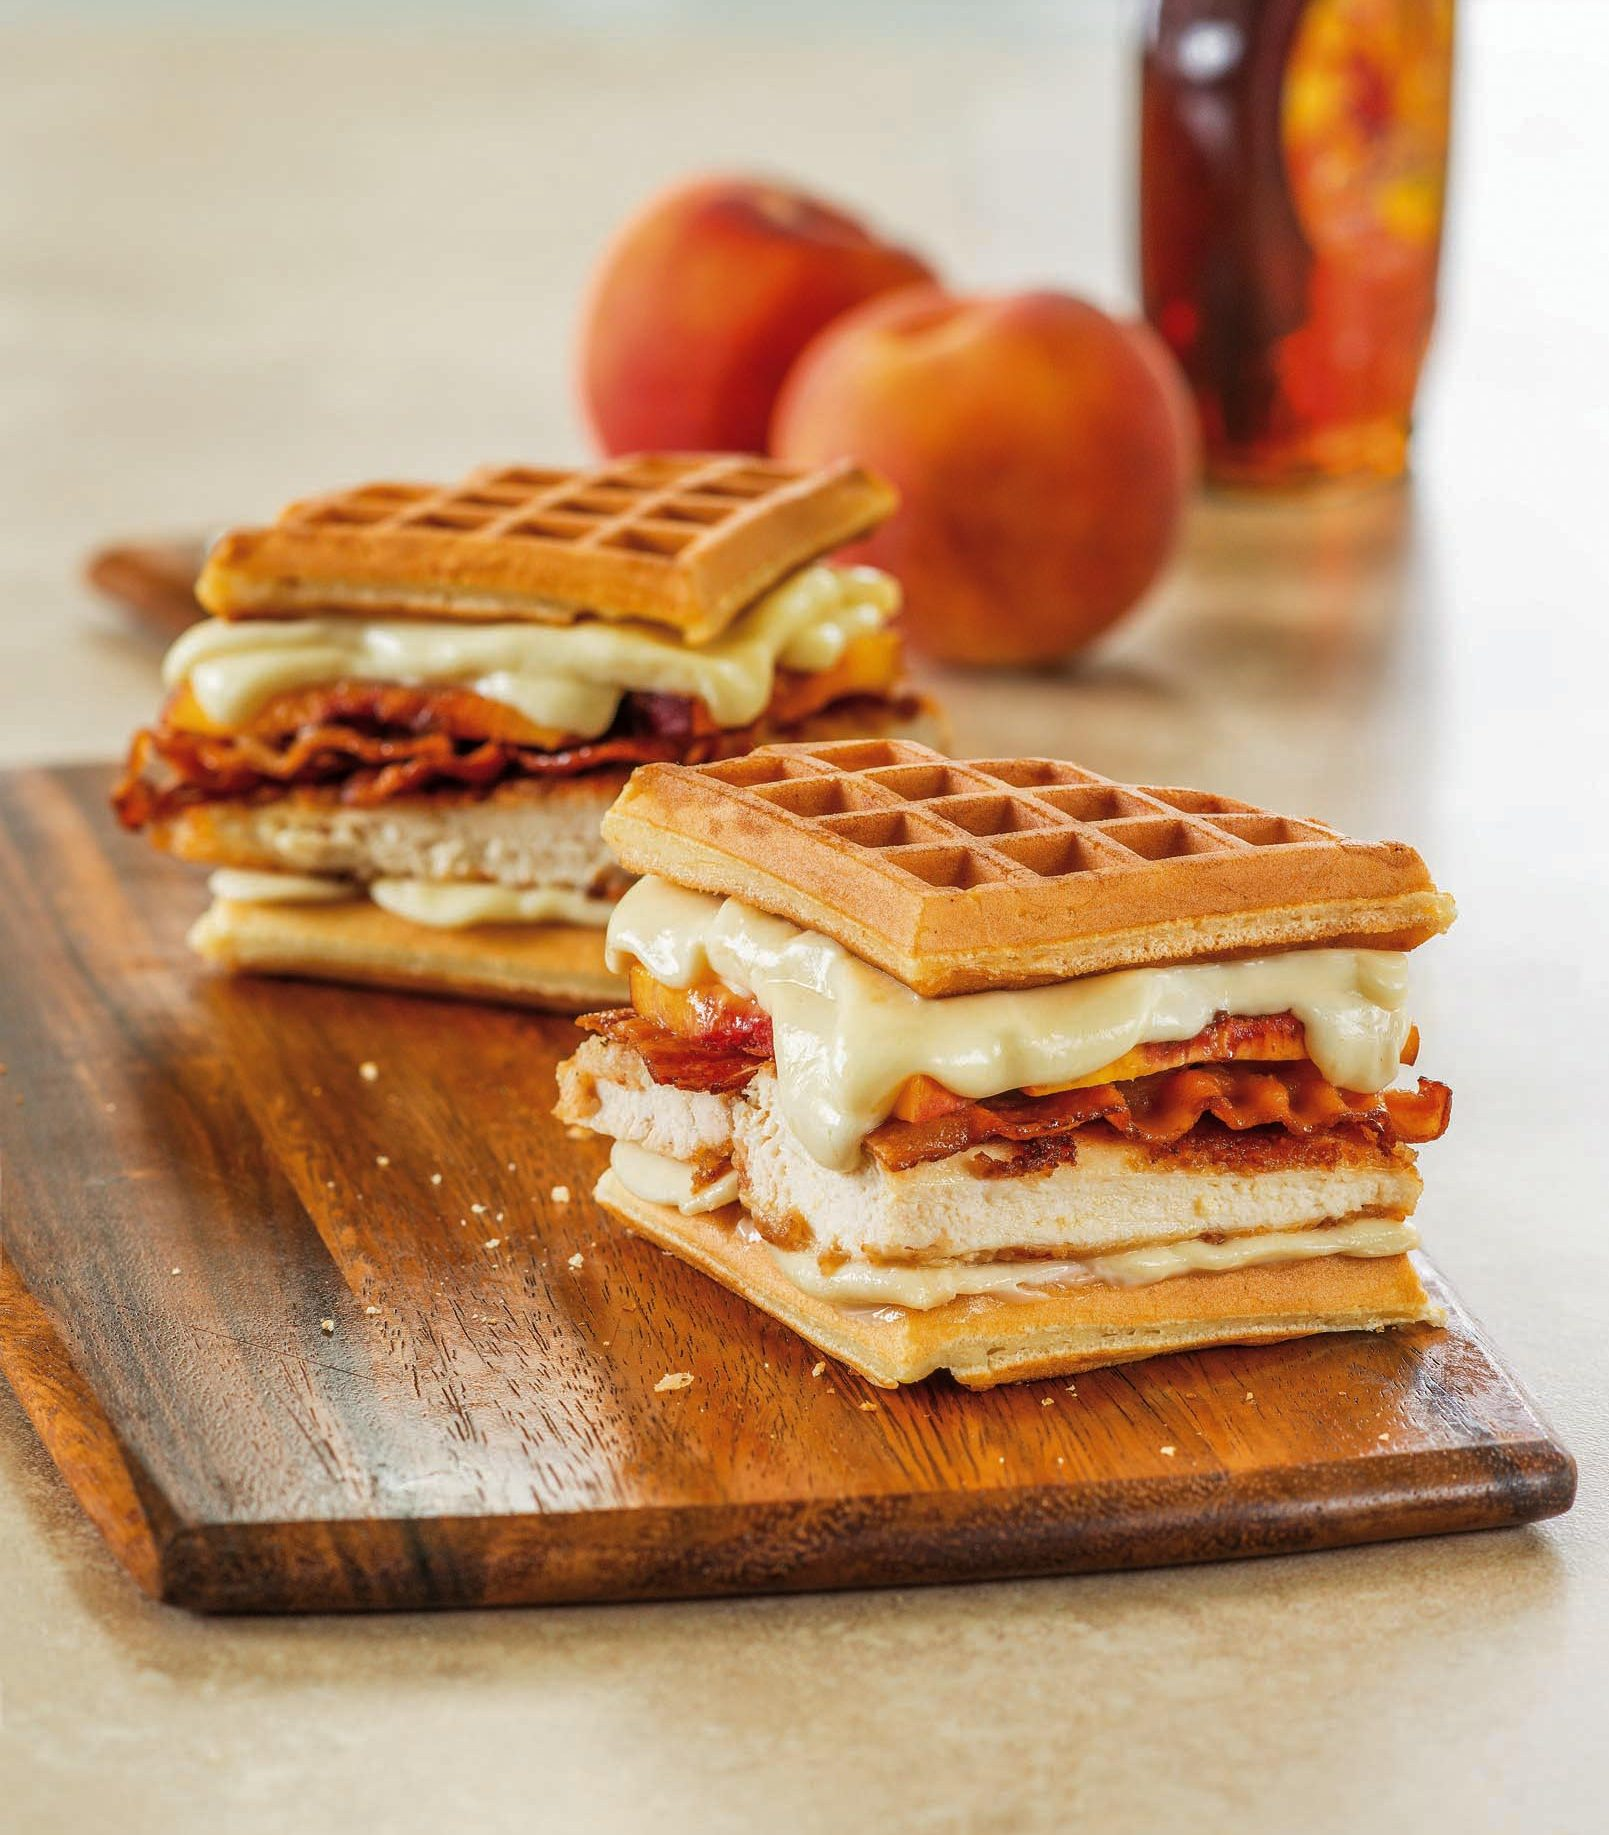 Chicken And Waffles Grilled Cheese Galbani Cheese Authentic Italian Cheese